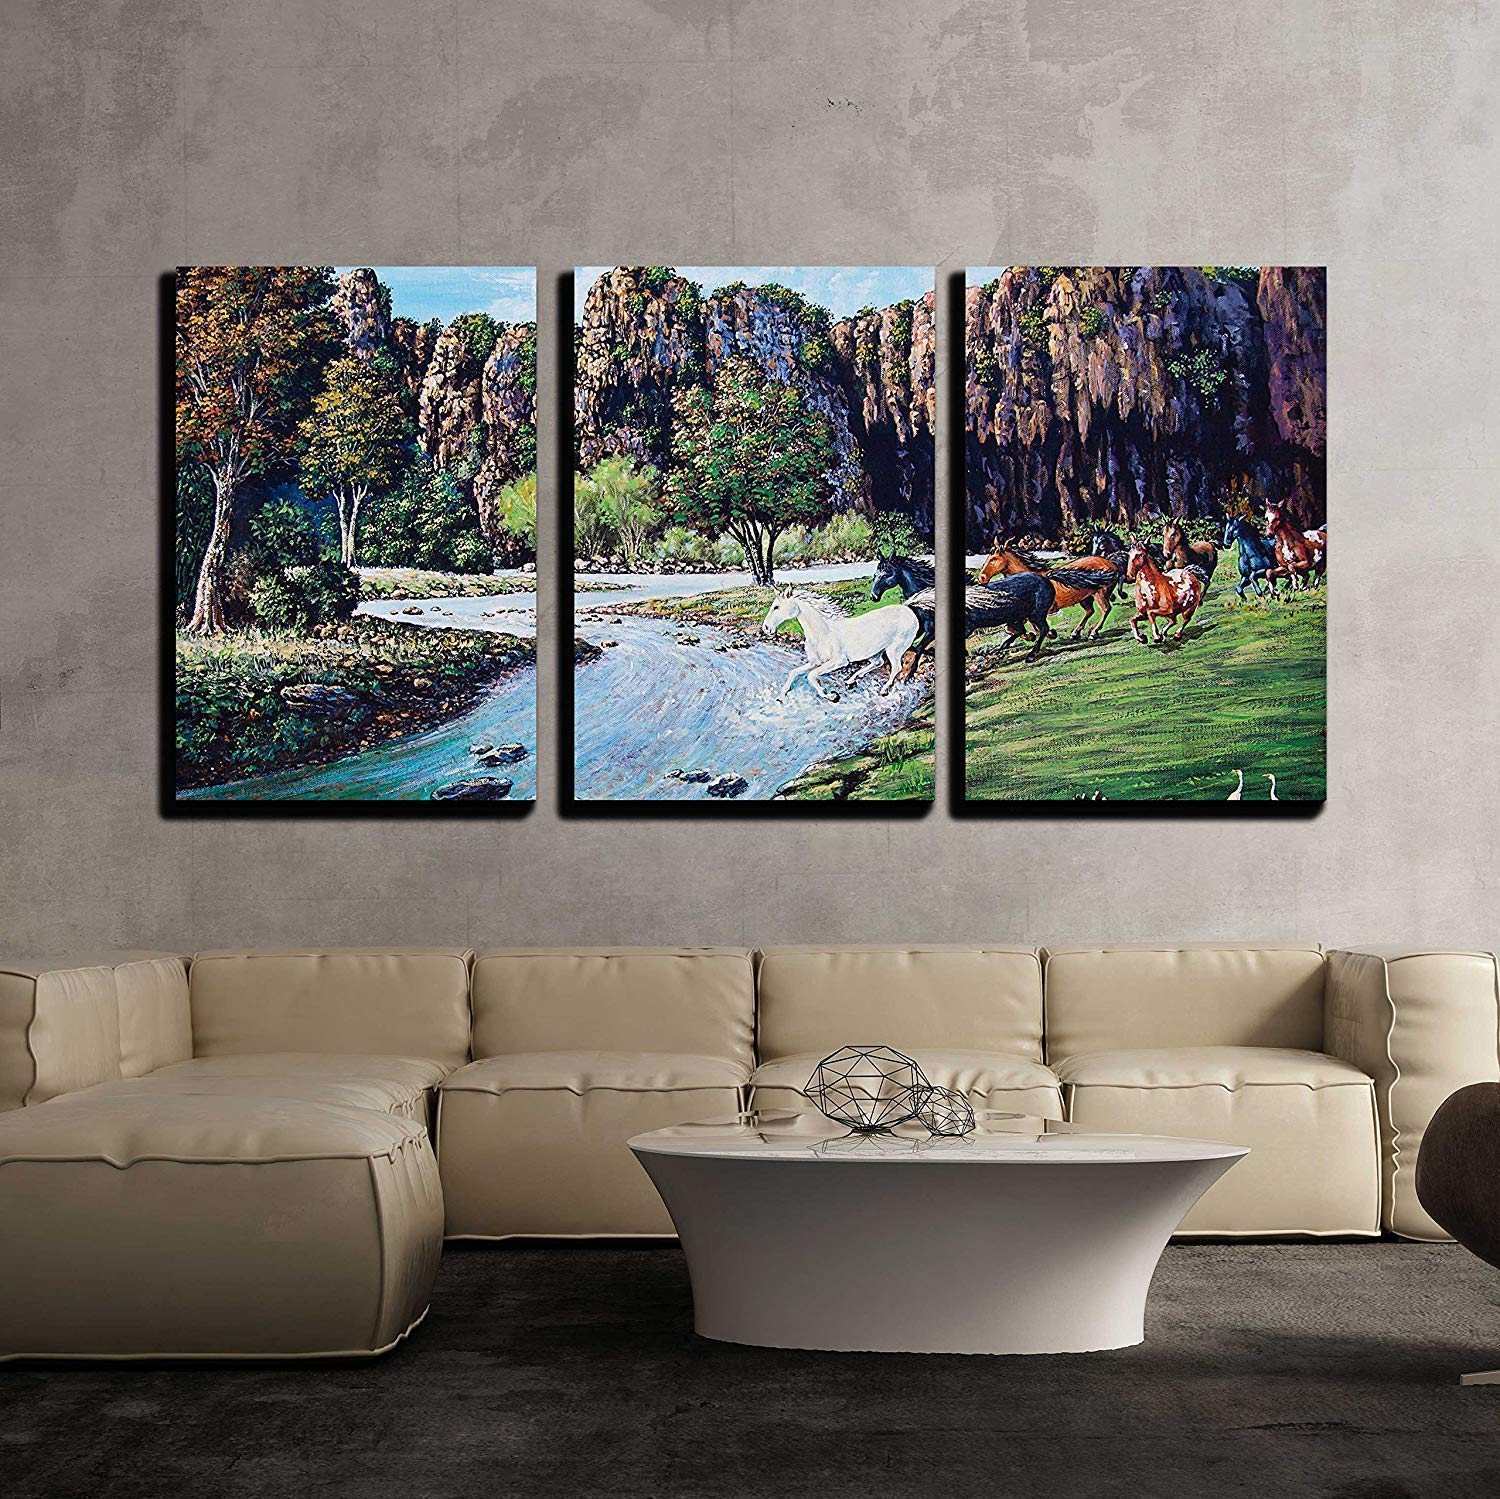 Great Wall26   3 Piece Canvas Wall Art   Horse Crossing The River Of Oil Painting